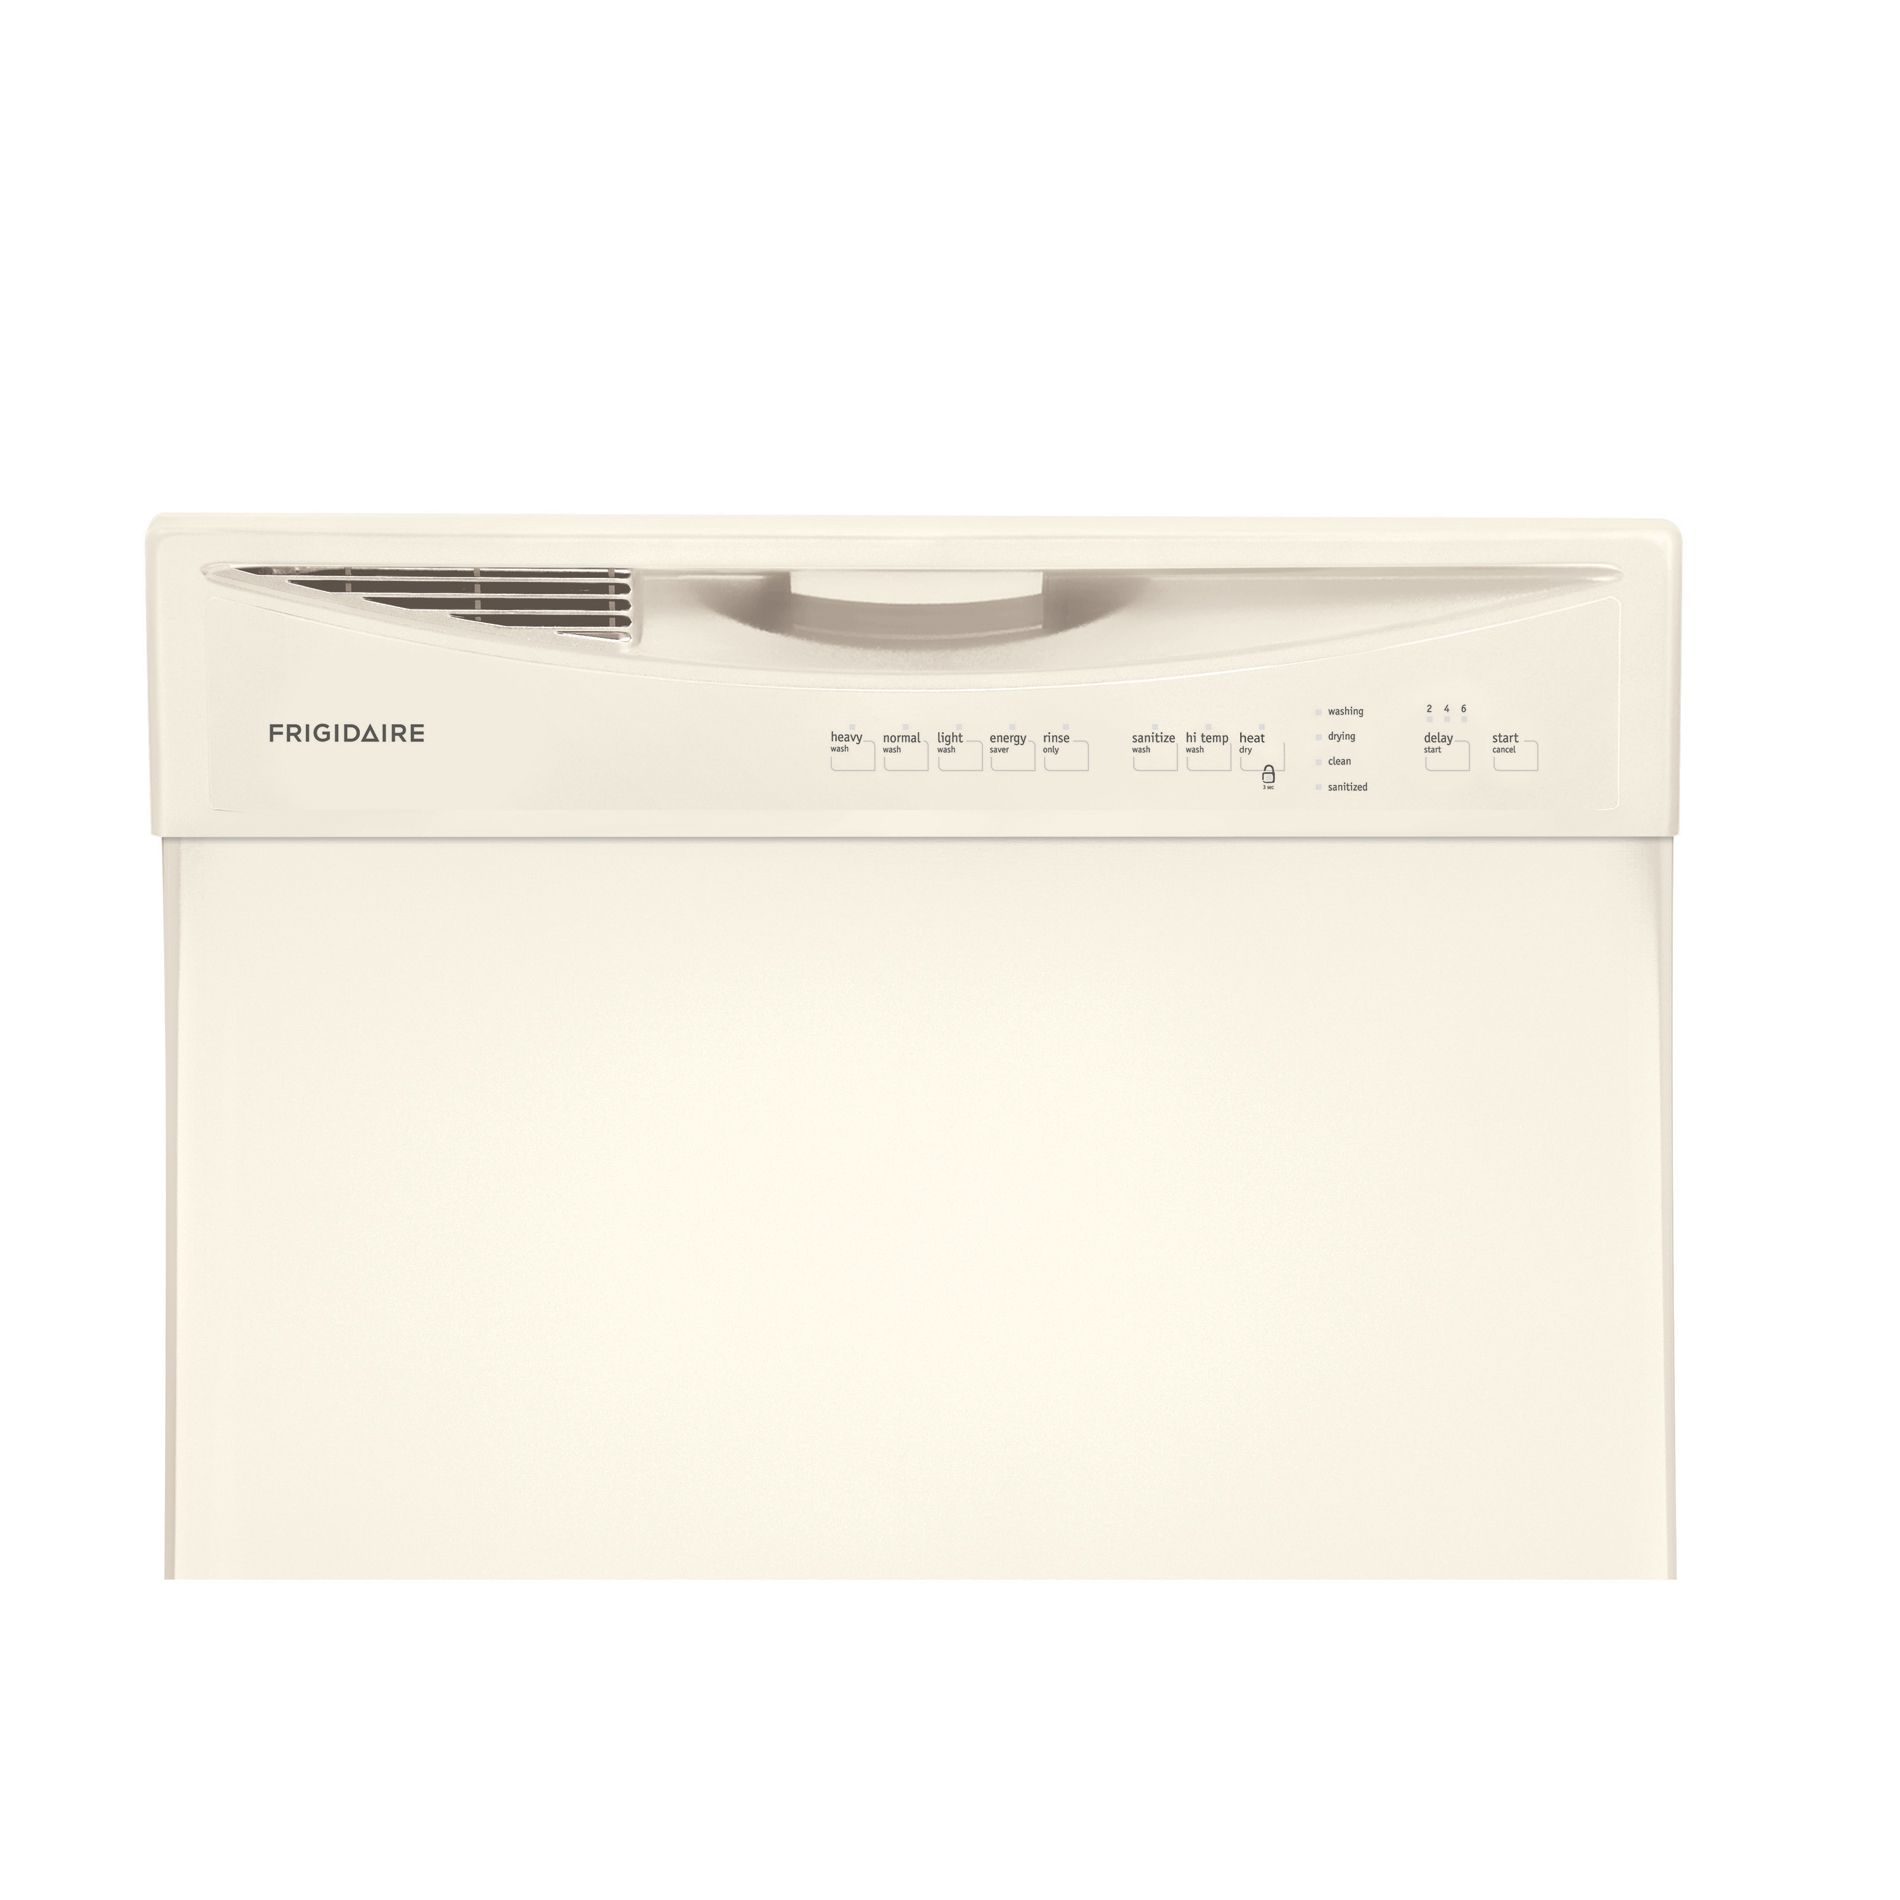 "Frigidaire FFBD2411NQ 24"" Built-In Dishwasher -  Bisque"